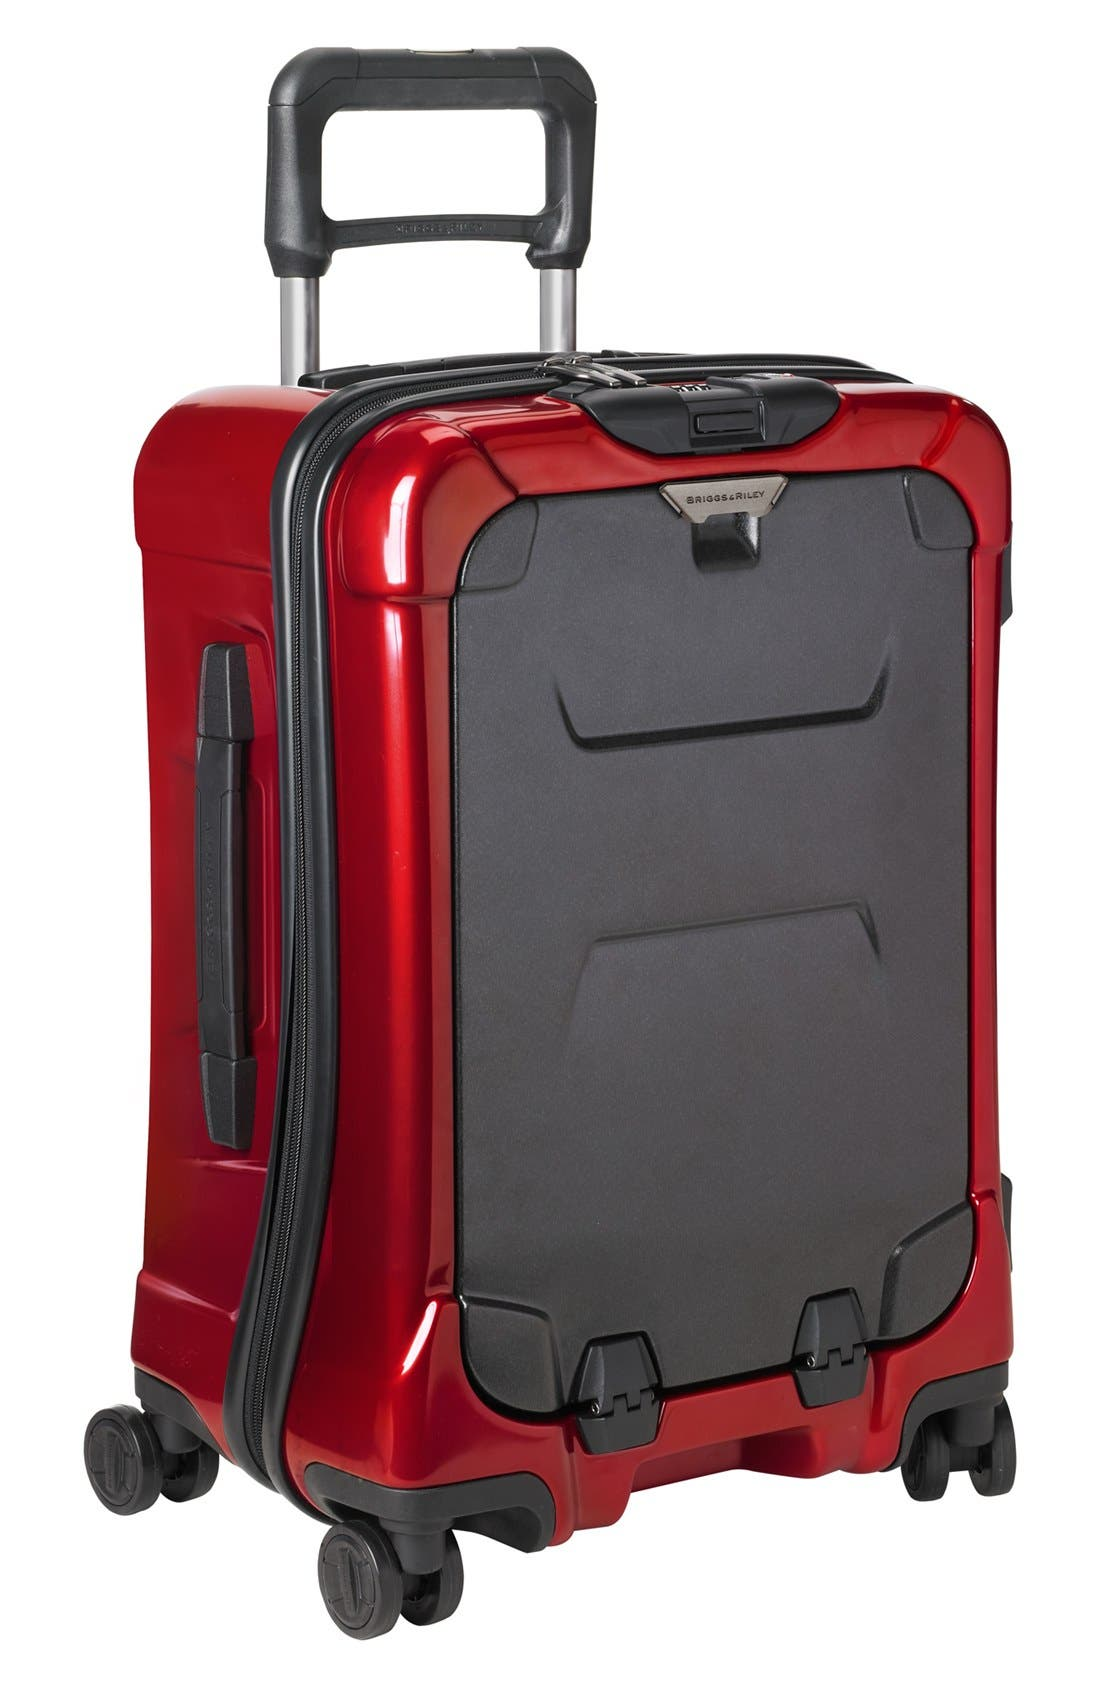 Briggs & Riley 'Torq International' Hard Shell Spinner Carry-On (20 Inch)